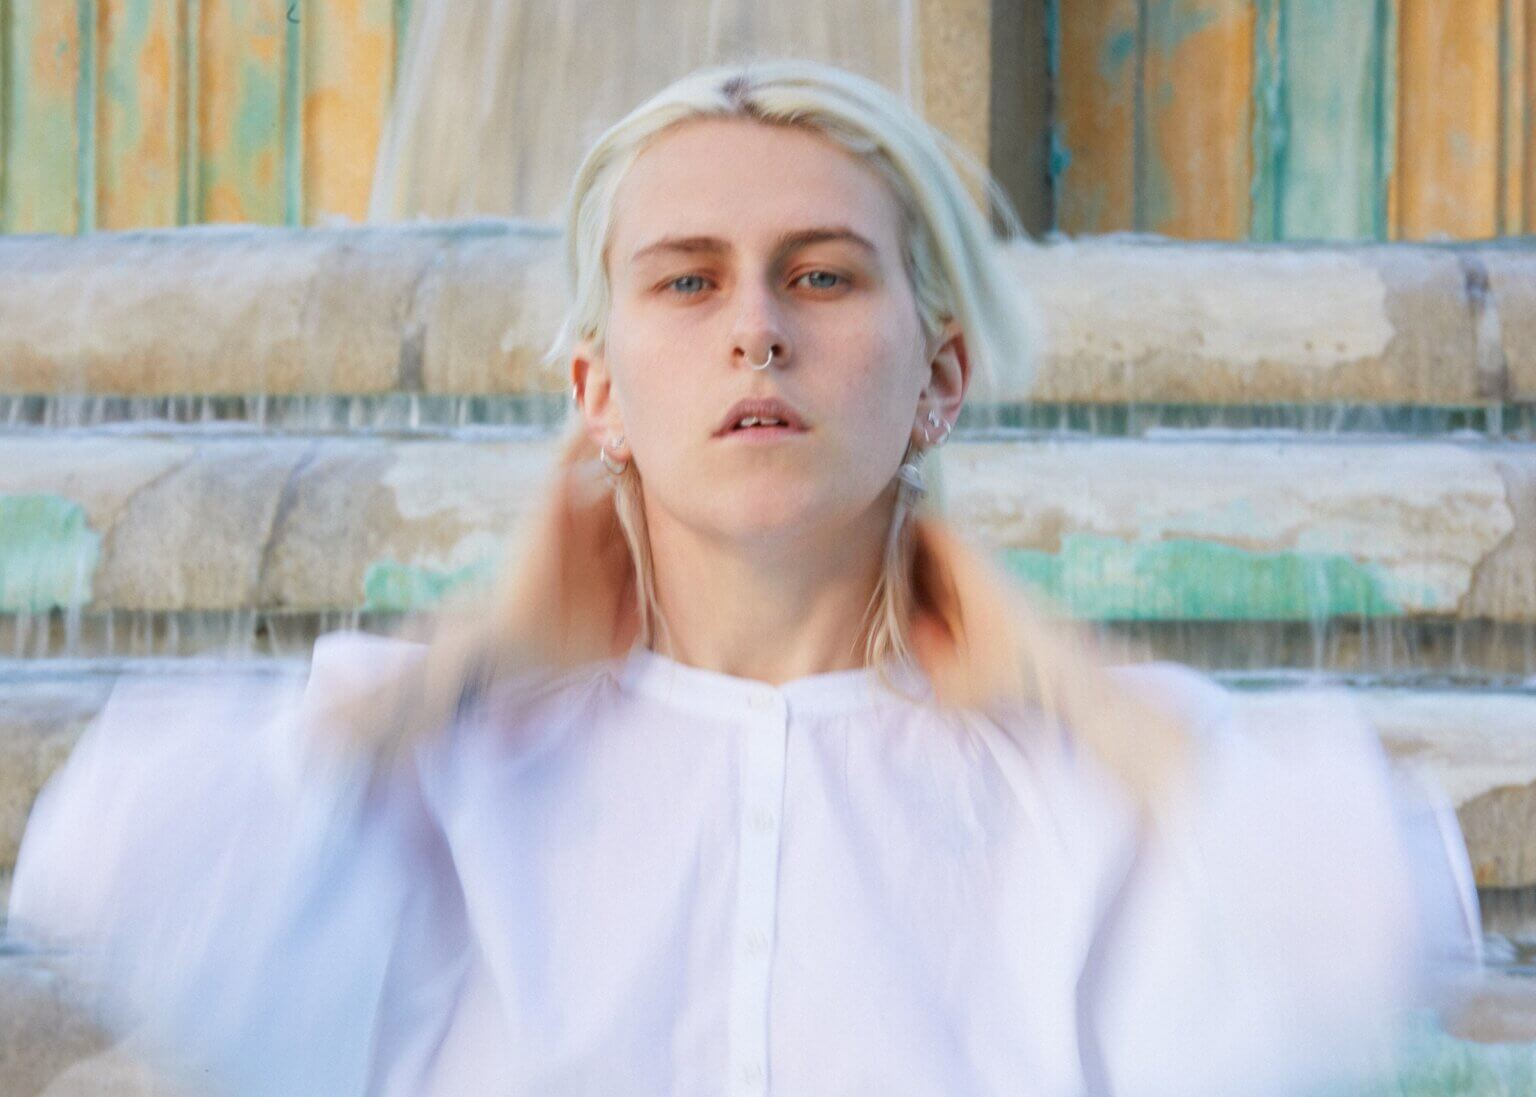 """Lala Lala Shares New Single """"Utopia Planet."""" The song is now available via Hardly Art. Lala Lala begins her tour on October 8, in Chicago"""